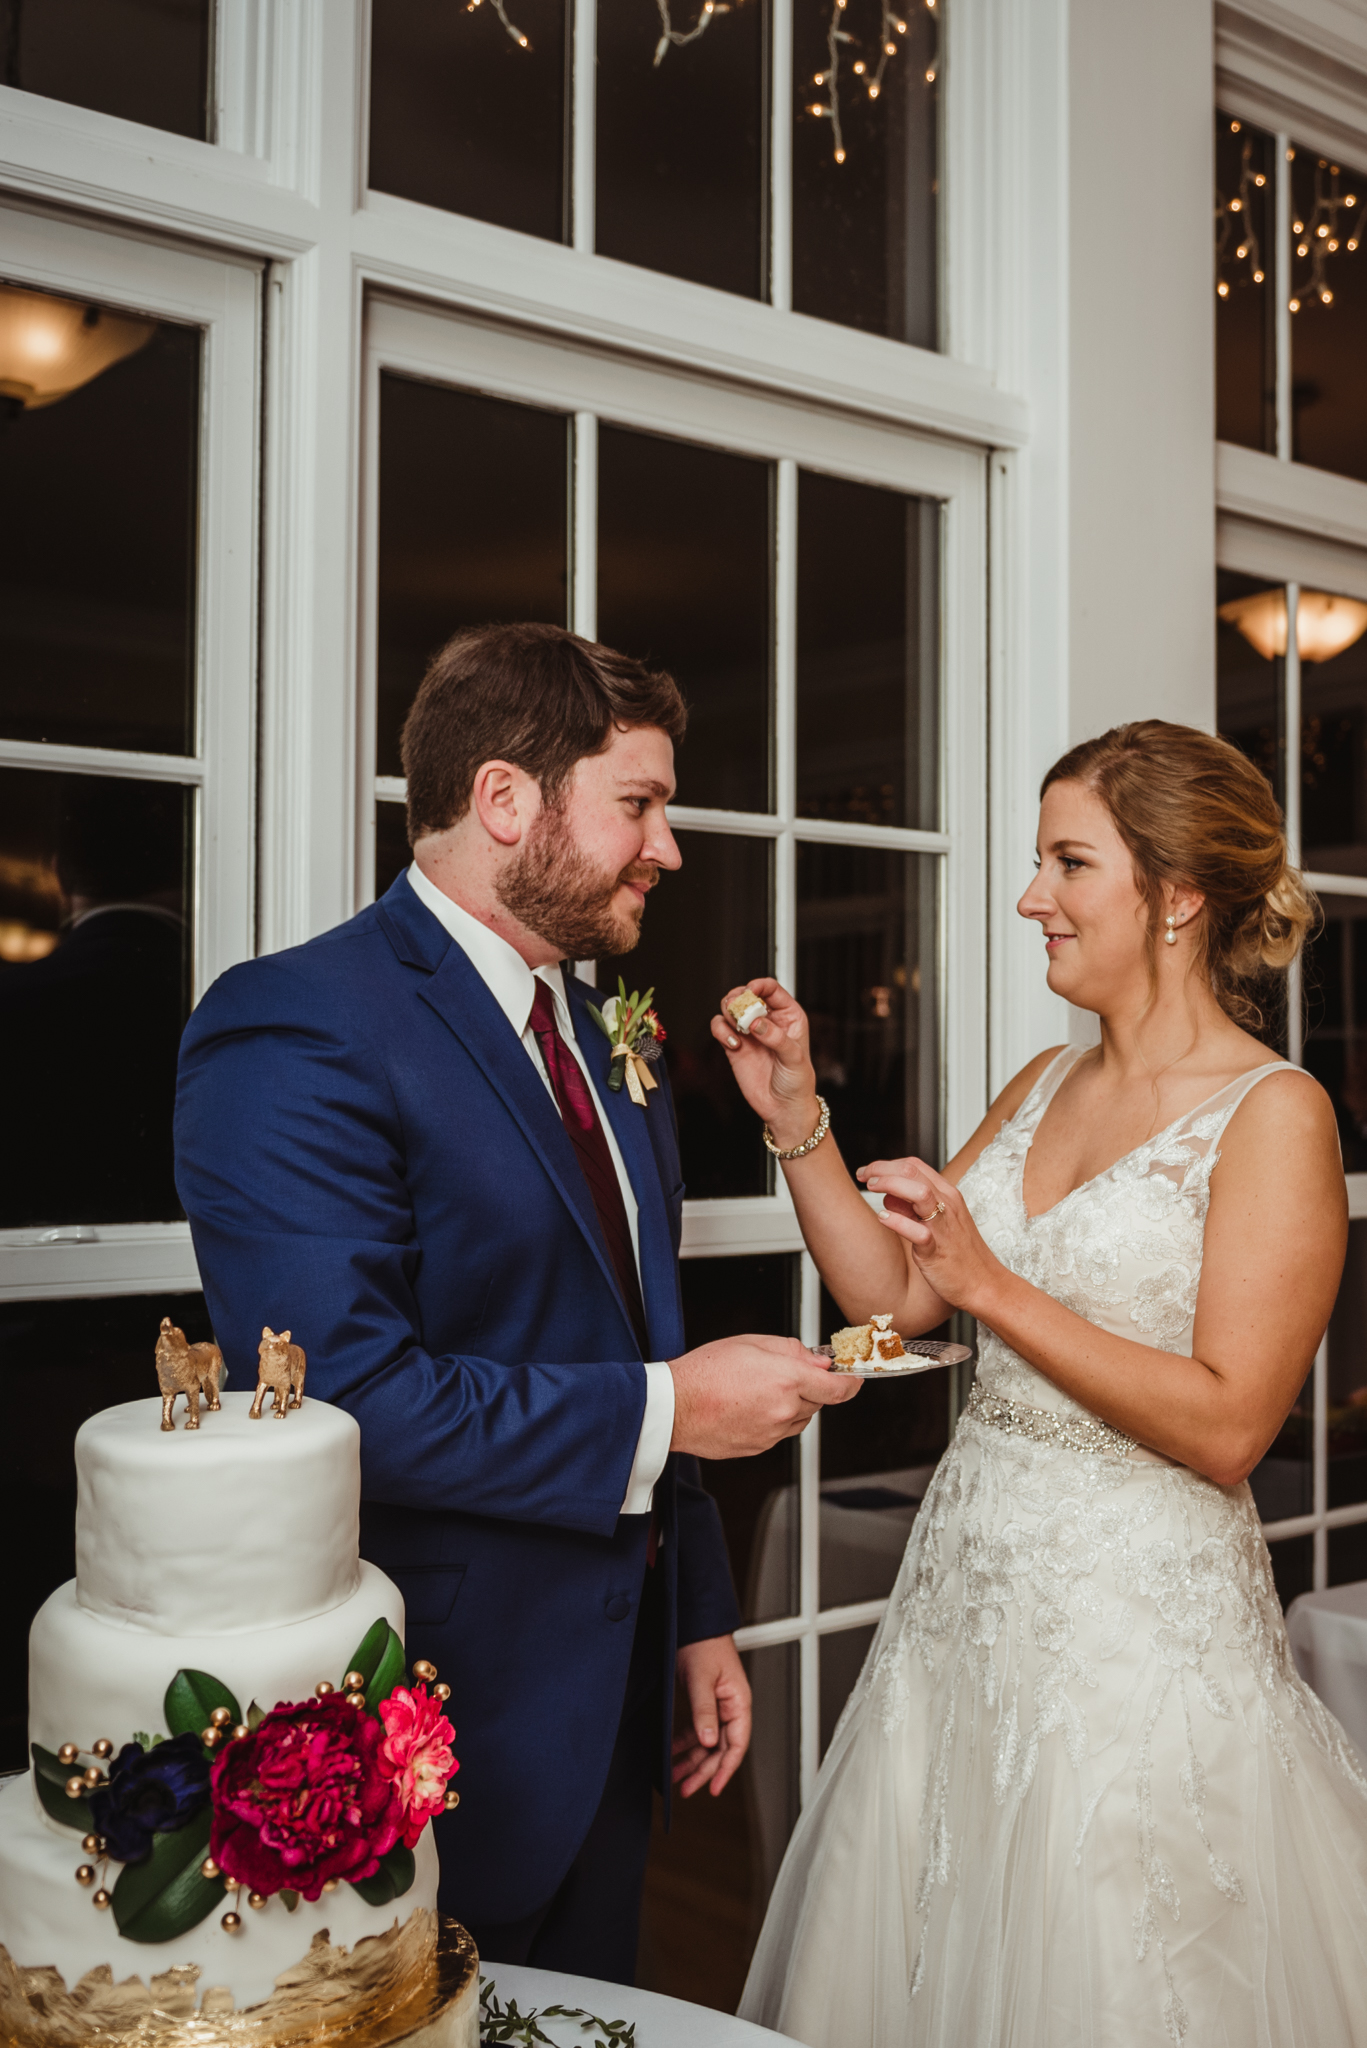 bride-and-groom-feeding-cake-to-each-other.jpg